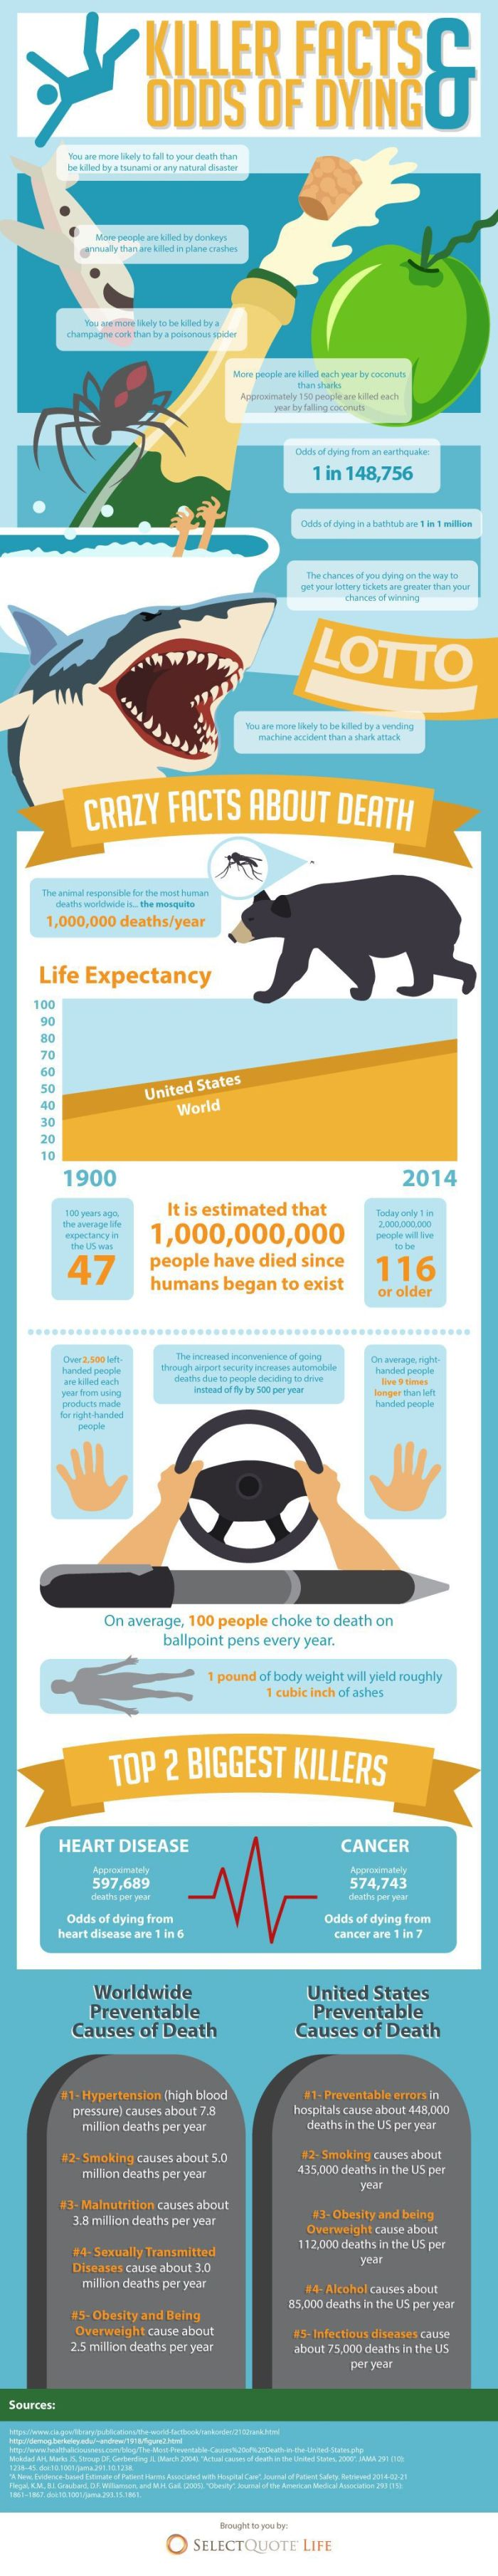 Insane Facts About Death And Dying (infographic)